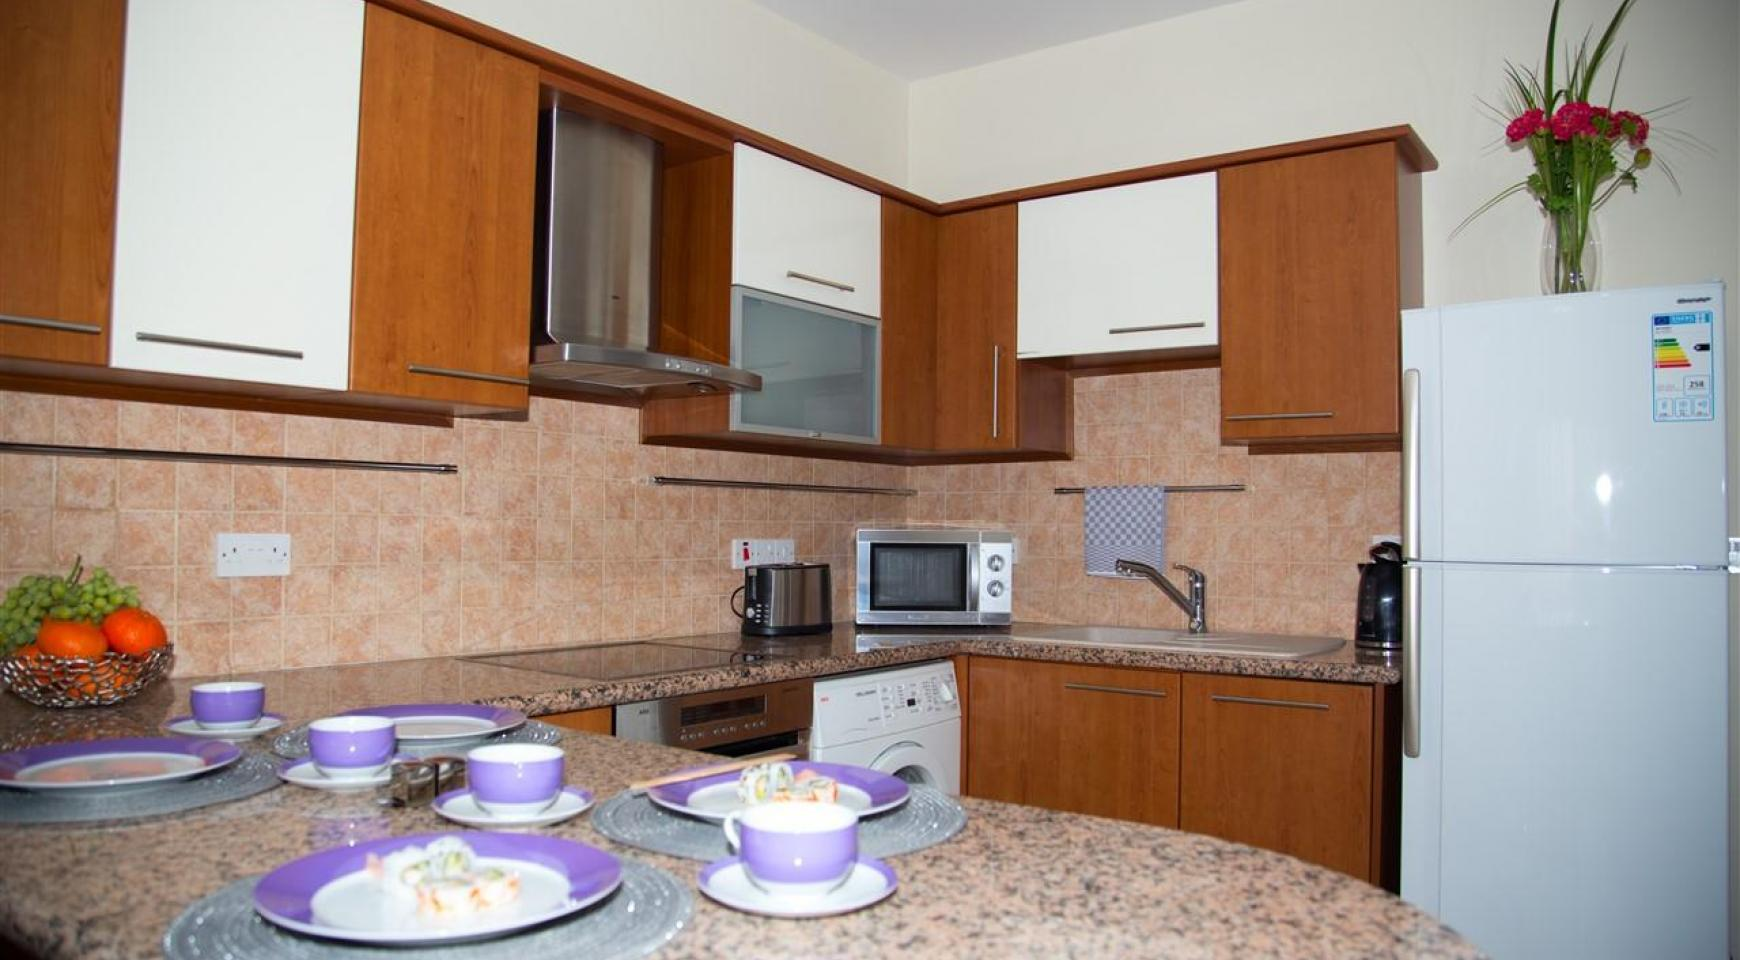 2 Bedroom Apartment Mesogios Iris 304 in the Complex near the Sea - 13